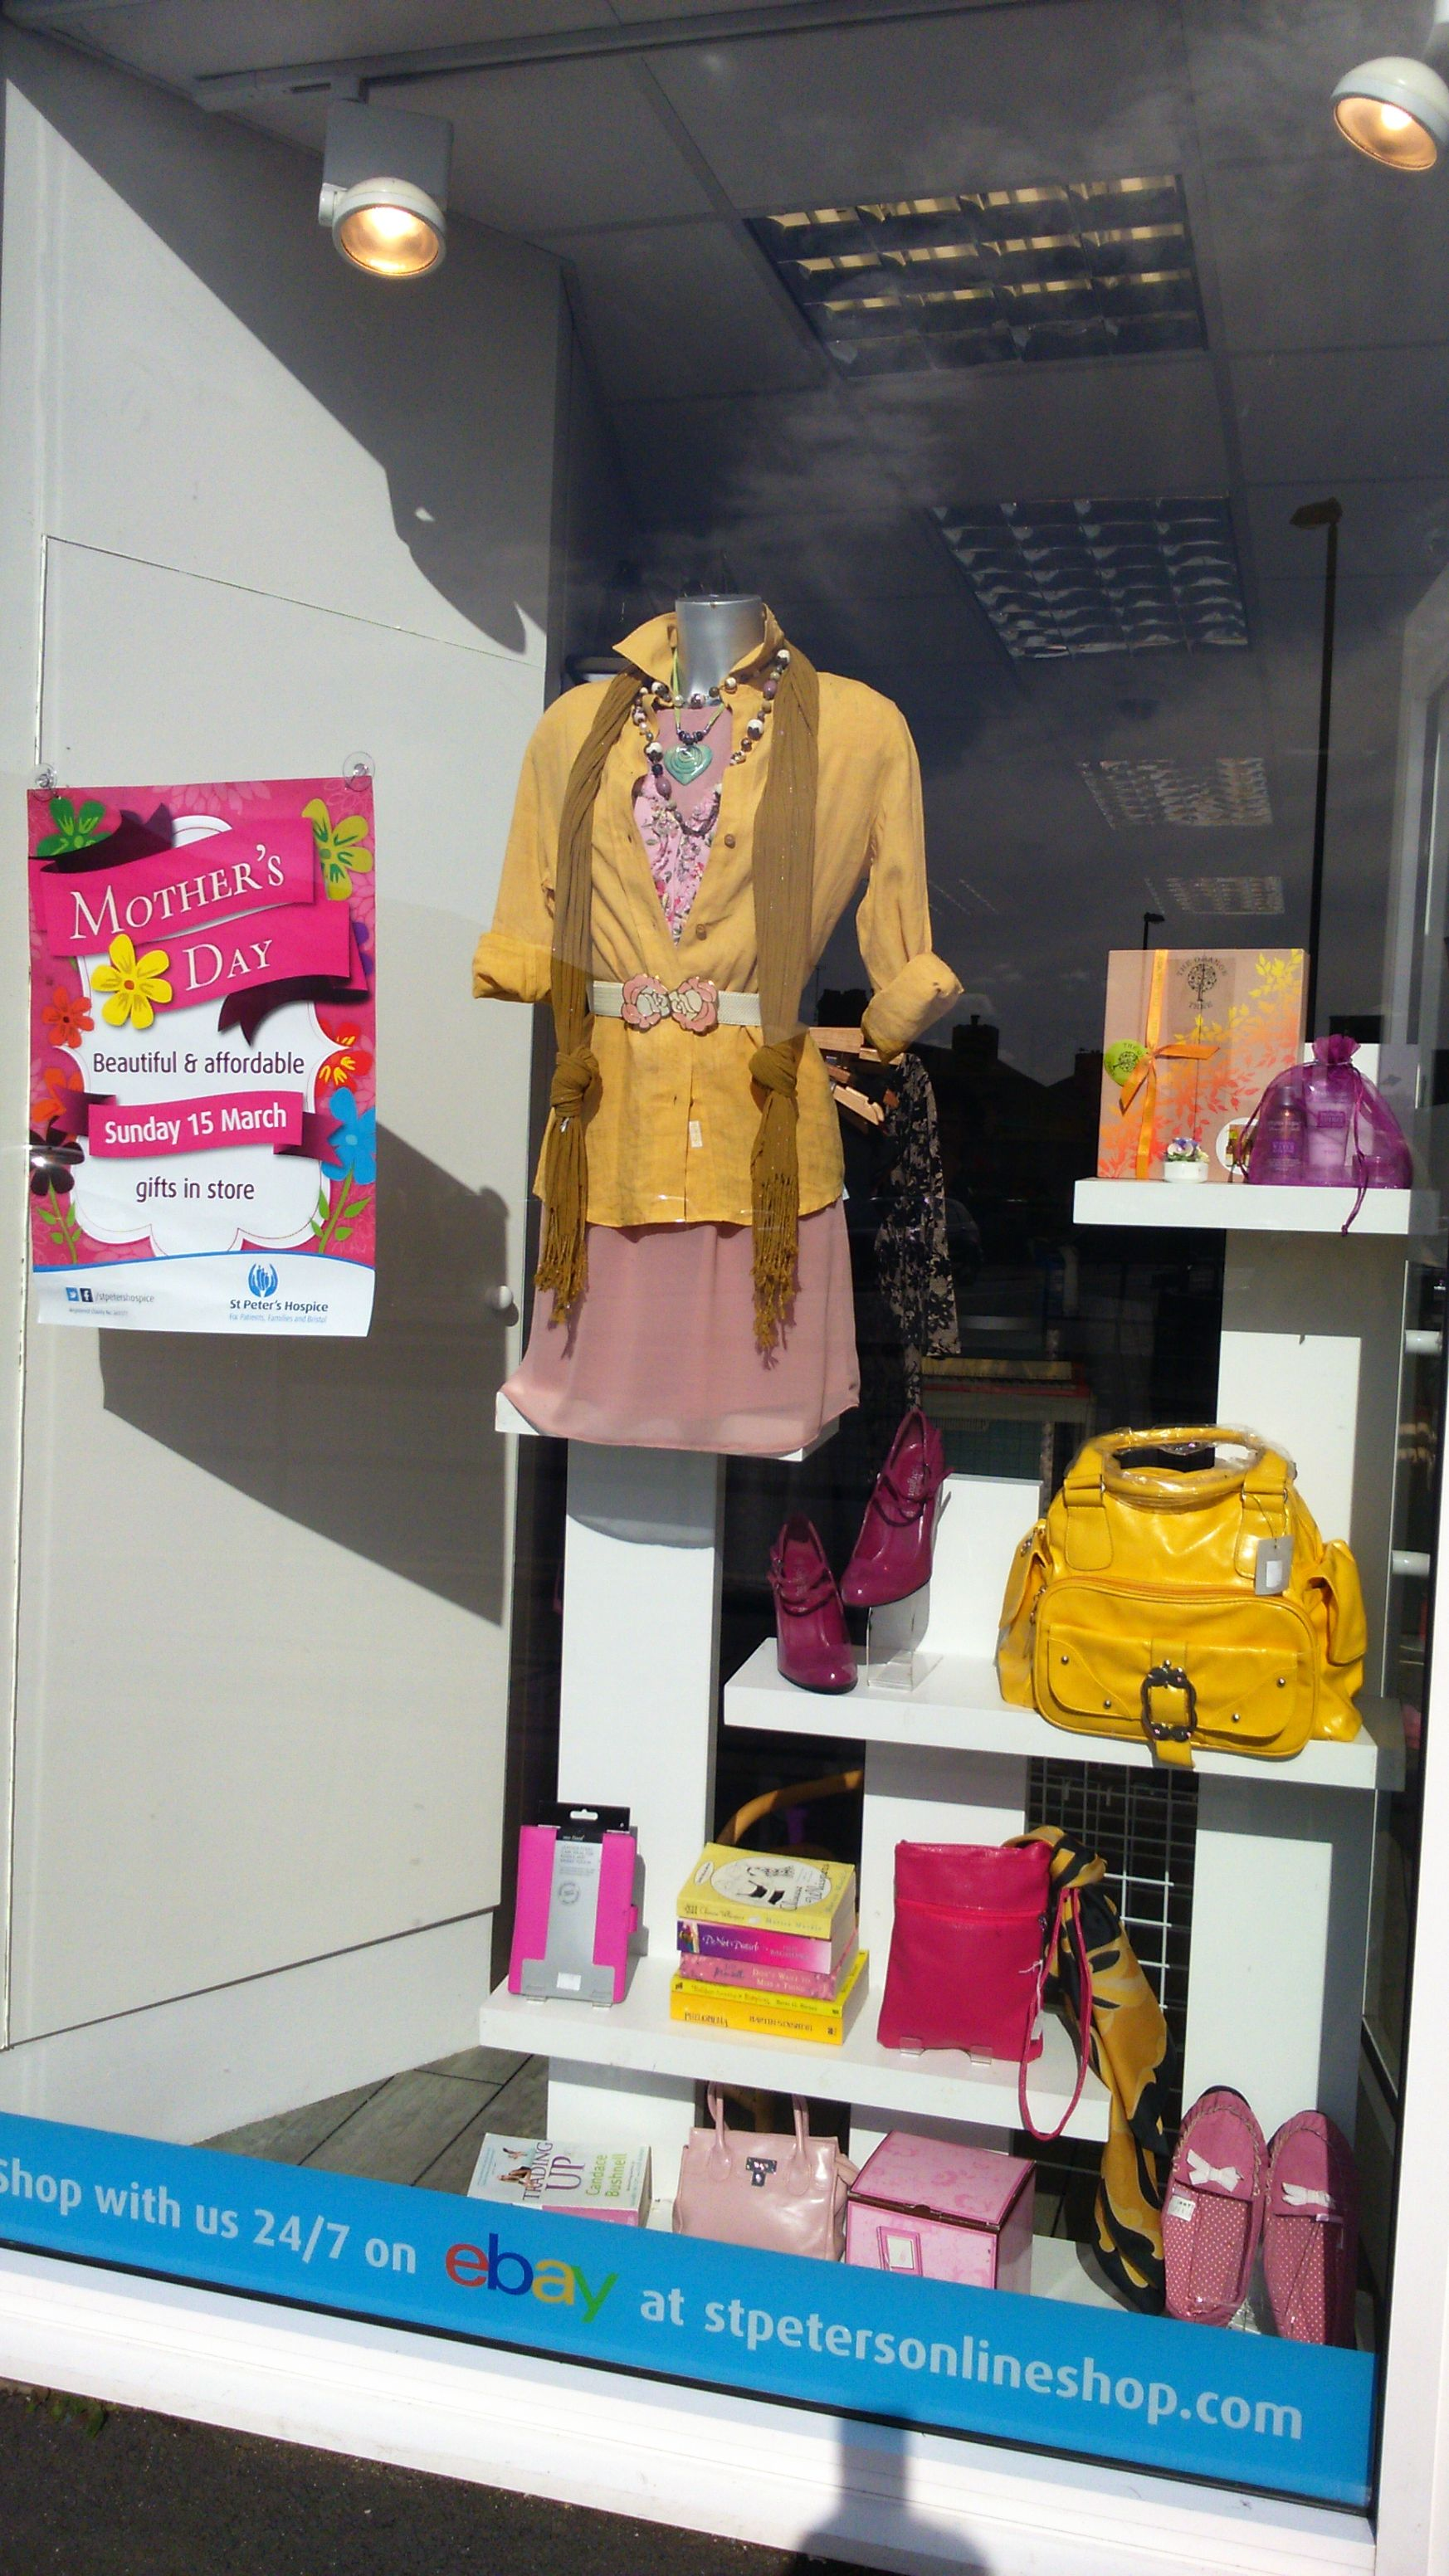 Mothers Day Window. https://www.facebook.com/pages/St-Peters-Hospice-Charity-Shop-Lodge-Causeway-Bristol/1546023025671824?ref=bookmarks